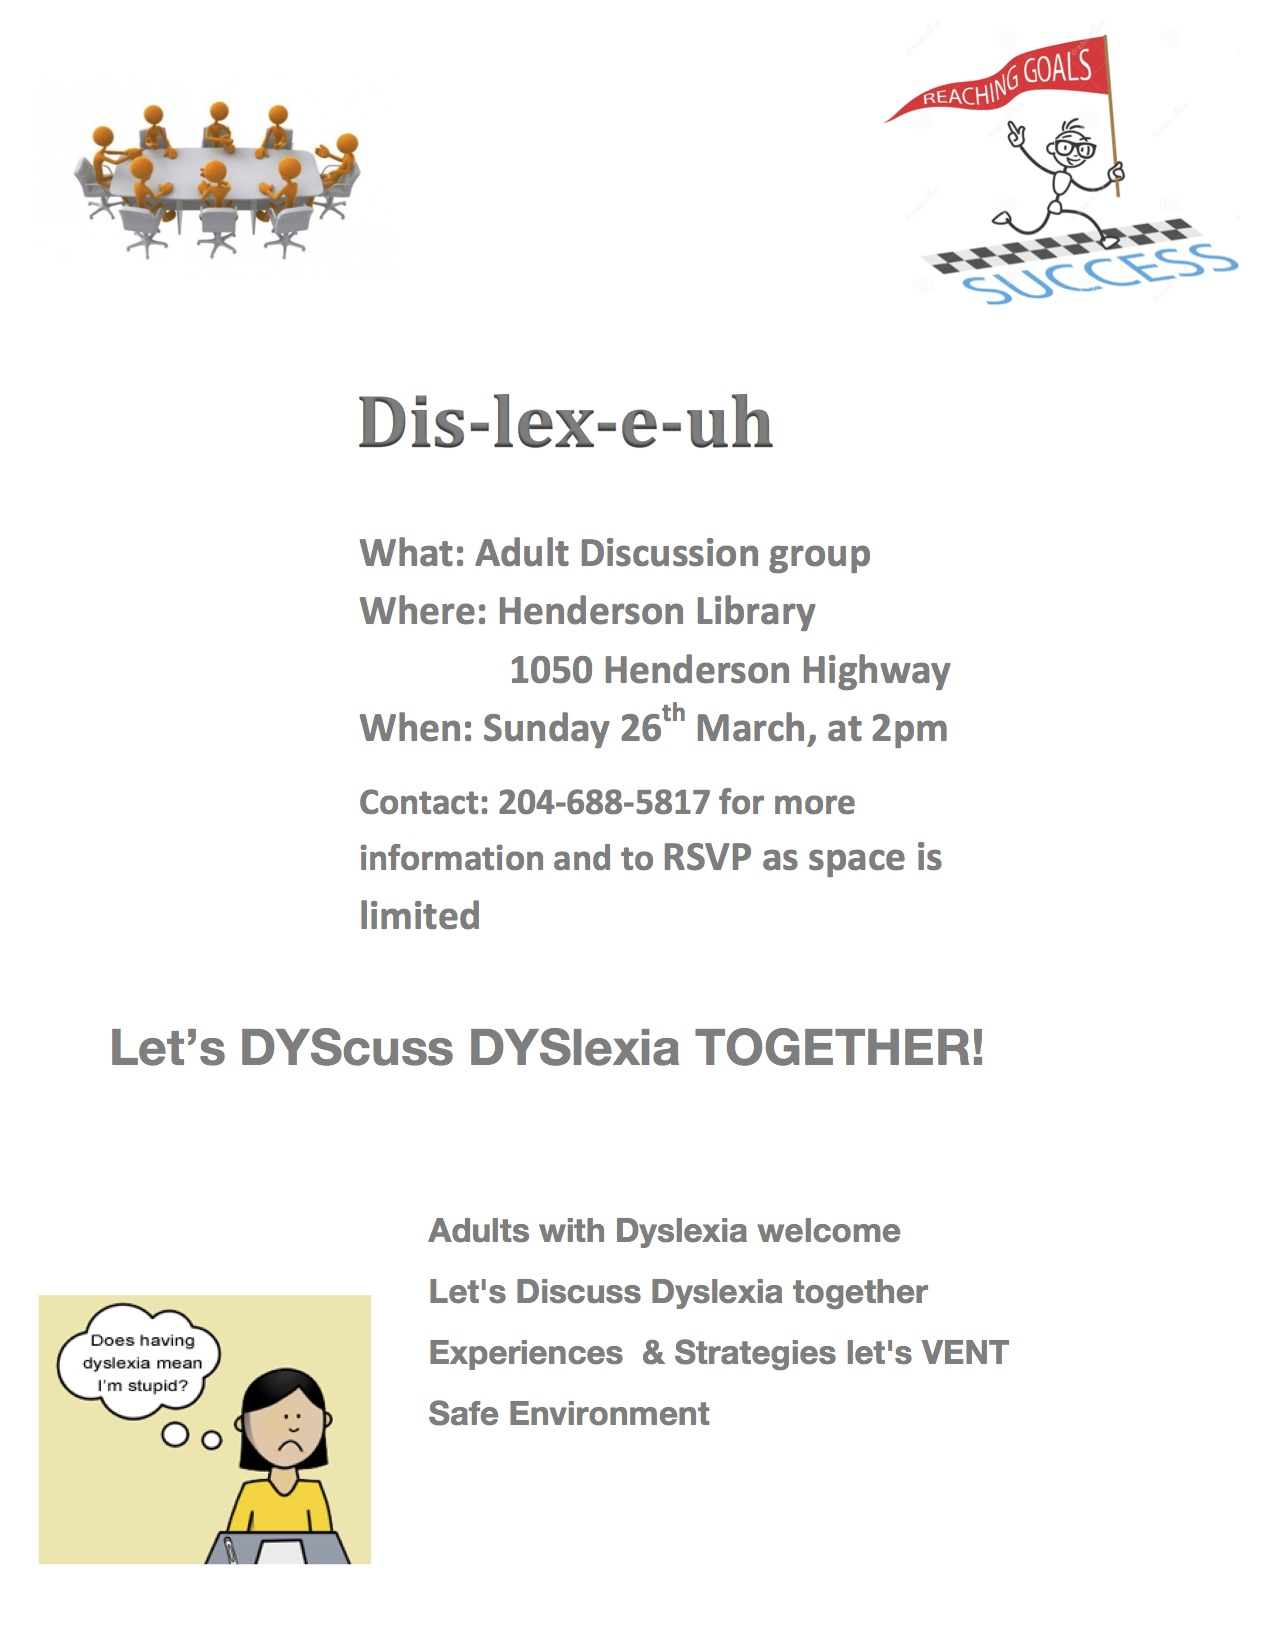 Adult Dyslexic Discussion Group